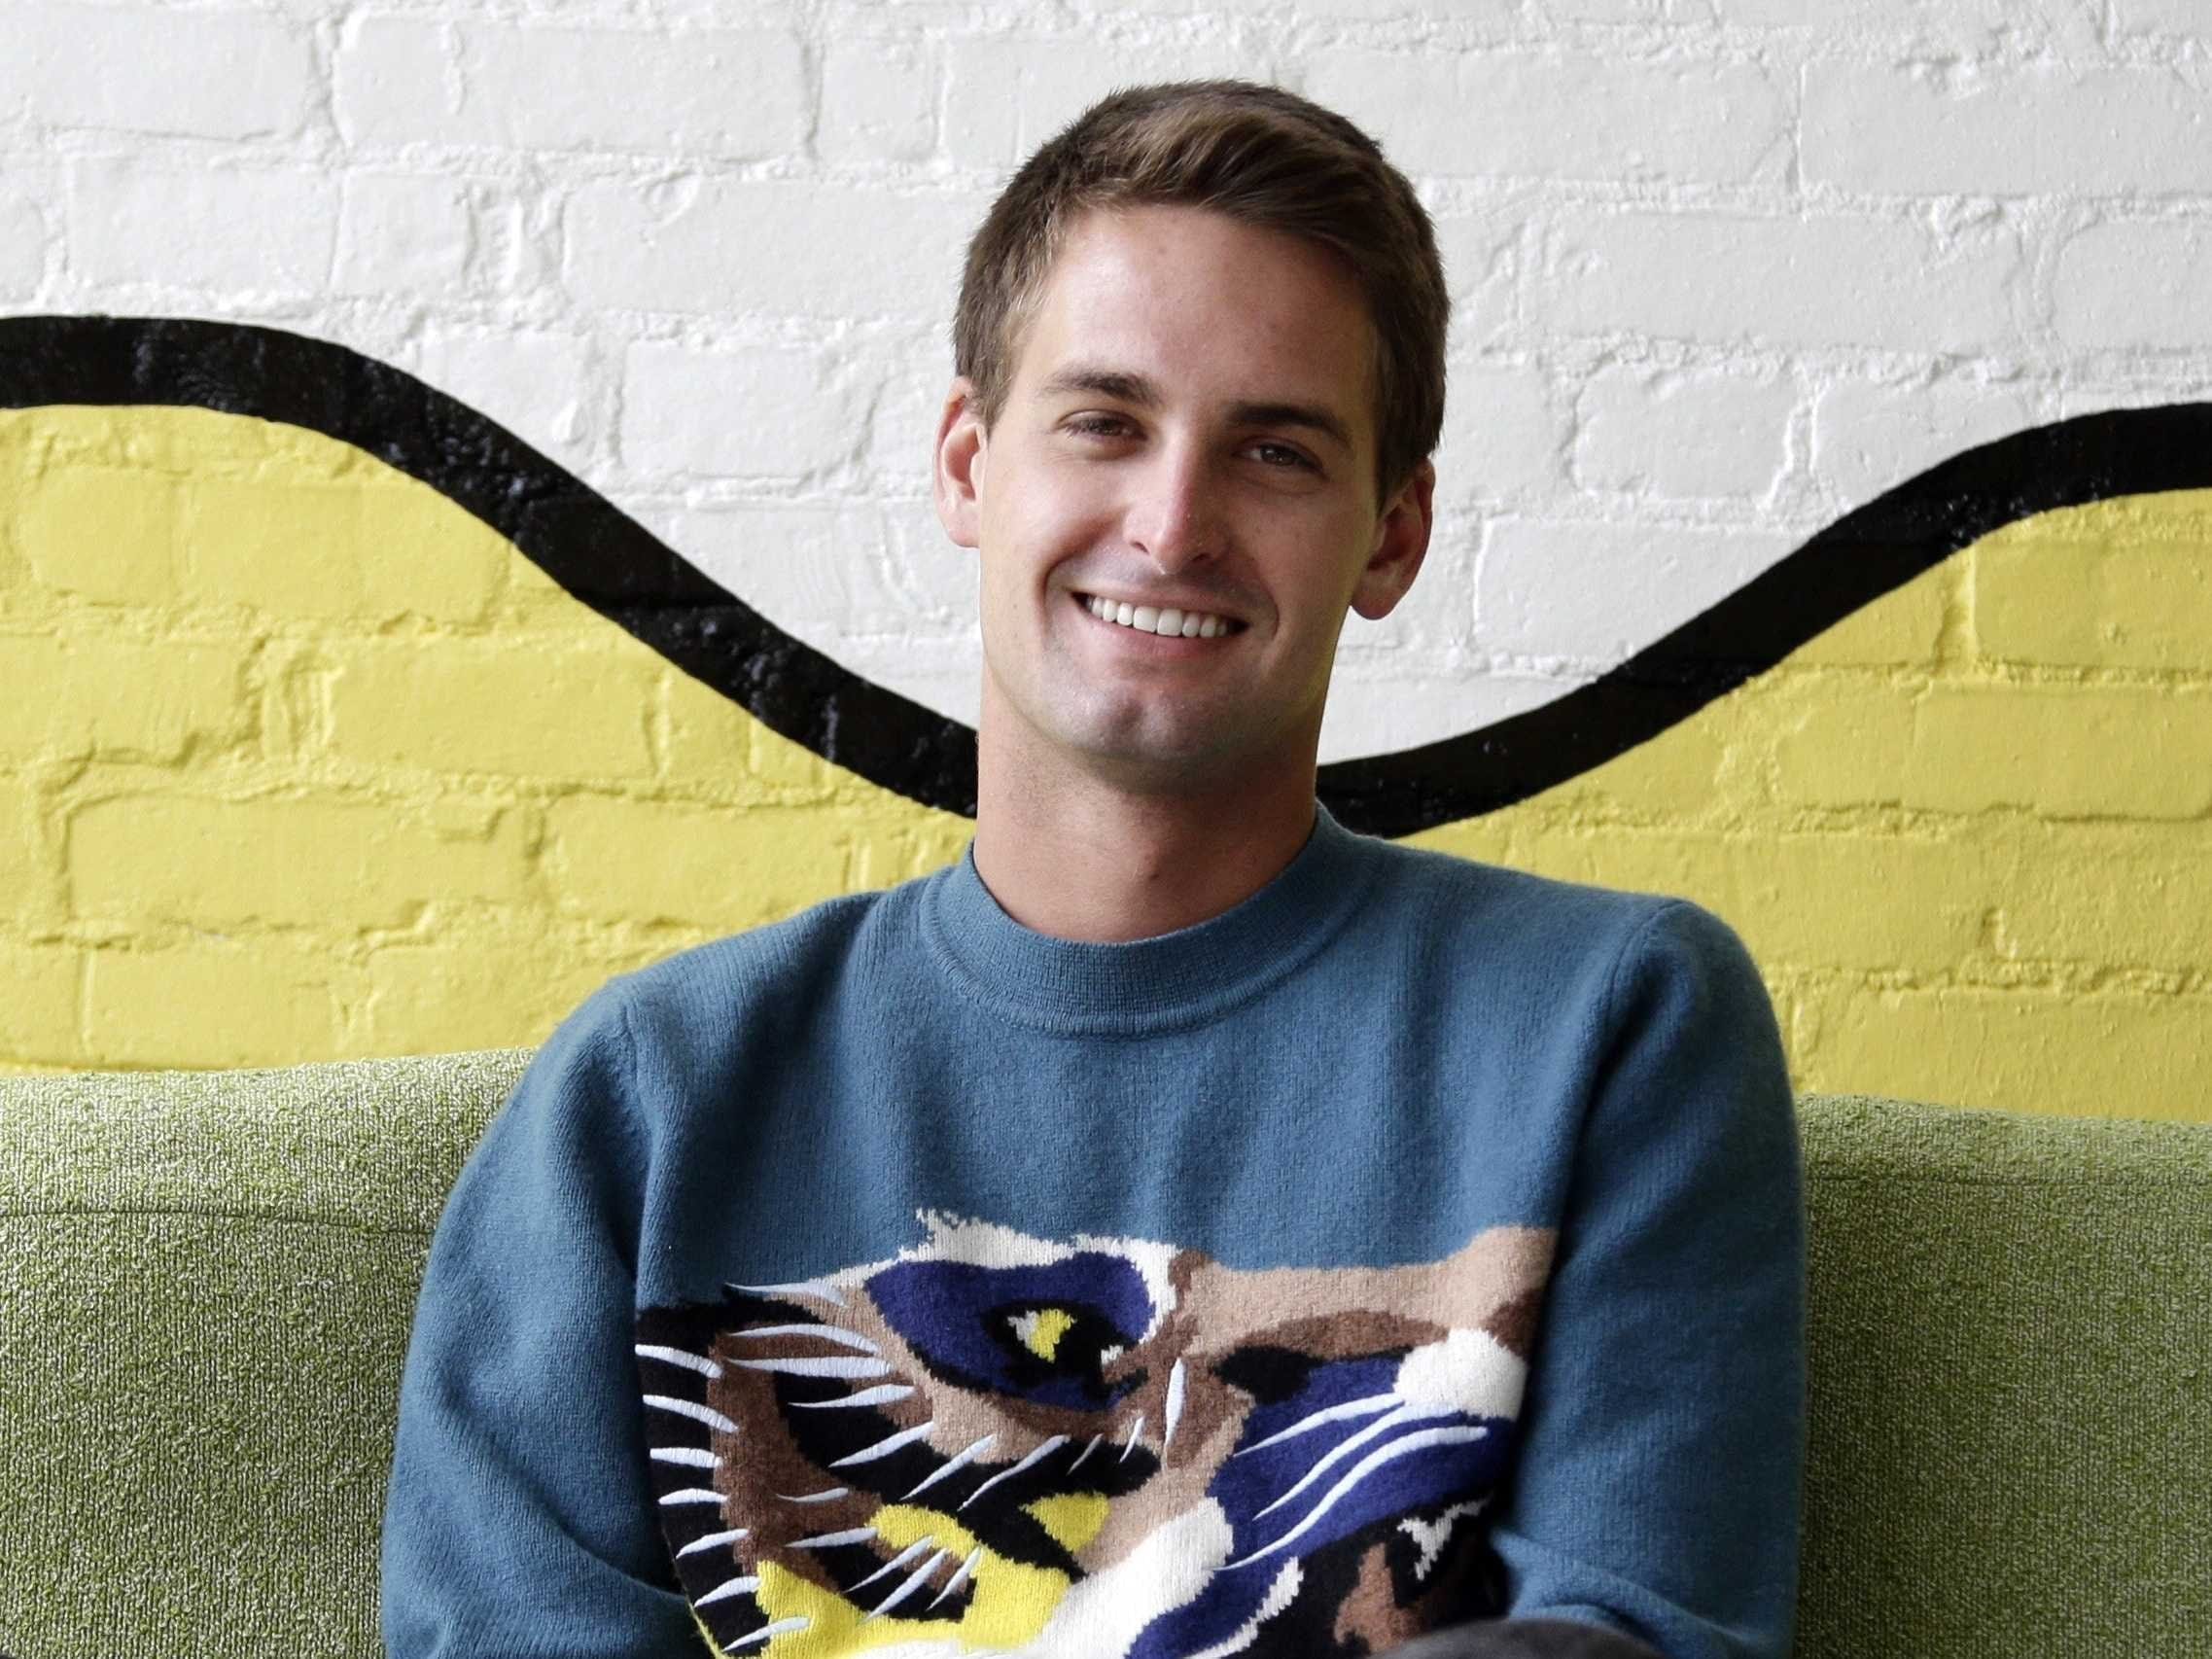 Evan Spiegel Is Right Though, Snapchat Is An App For Rich People, Not India